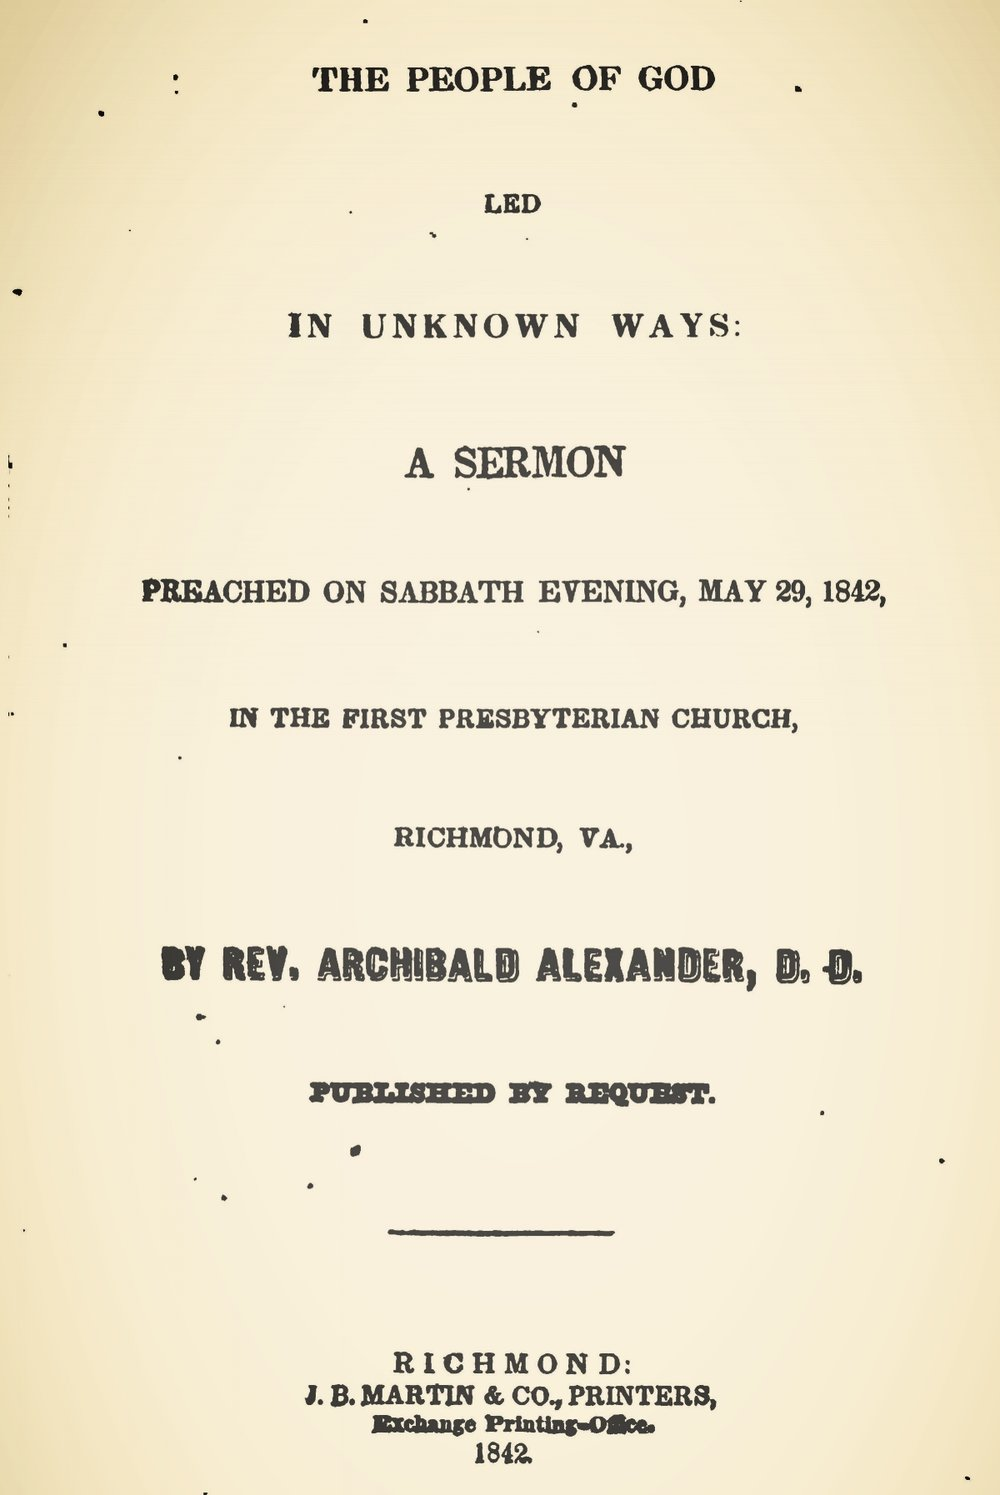 Alexander, Archibald, The People of God Led in Unknown Ways Title Page.jpg